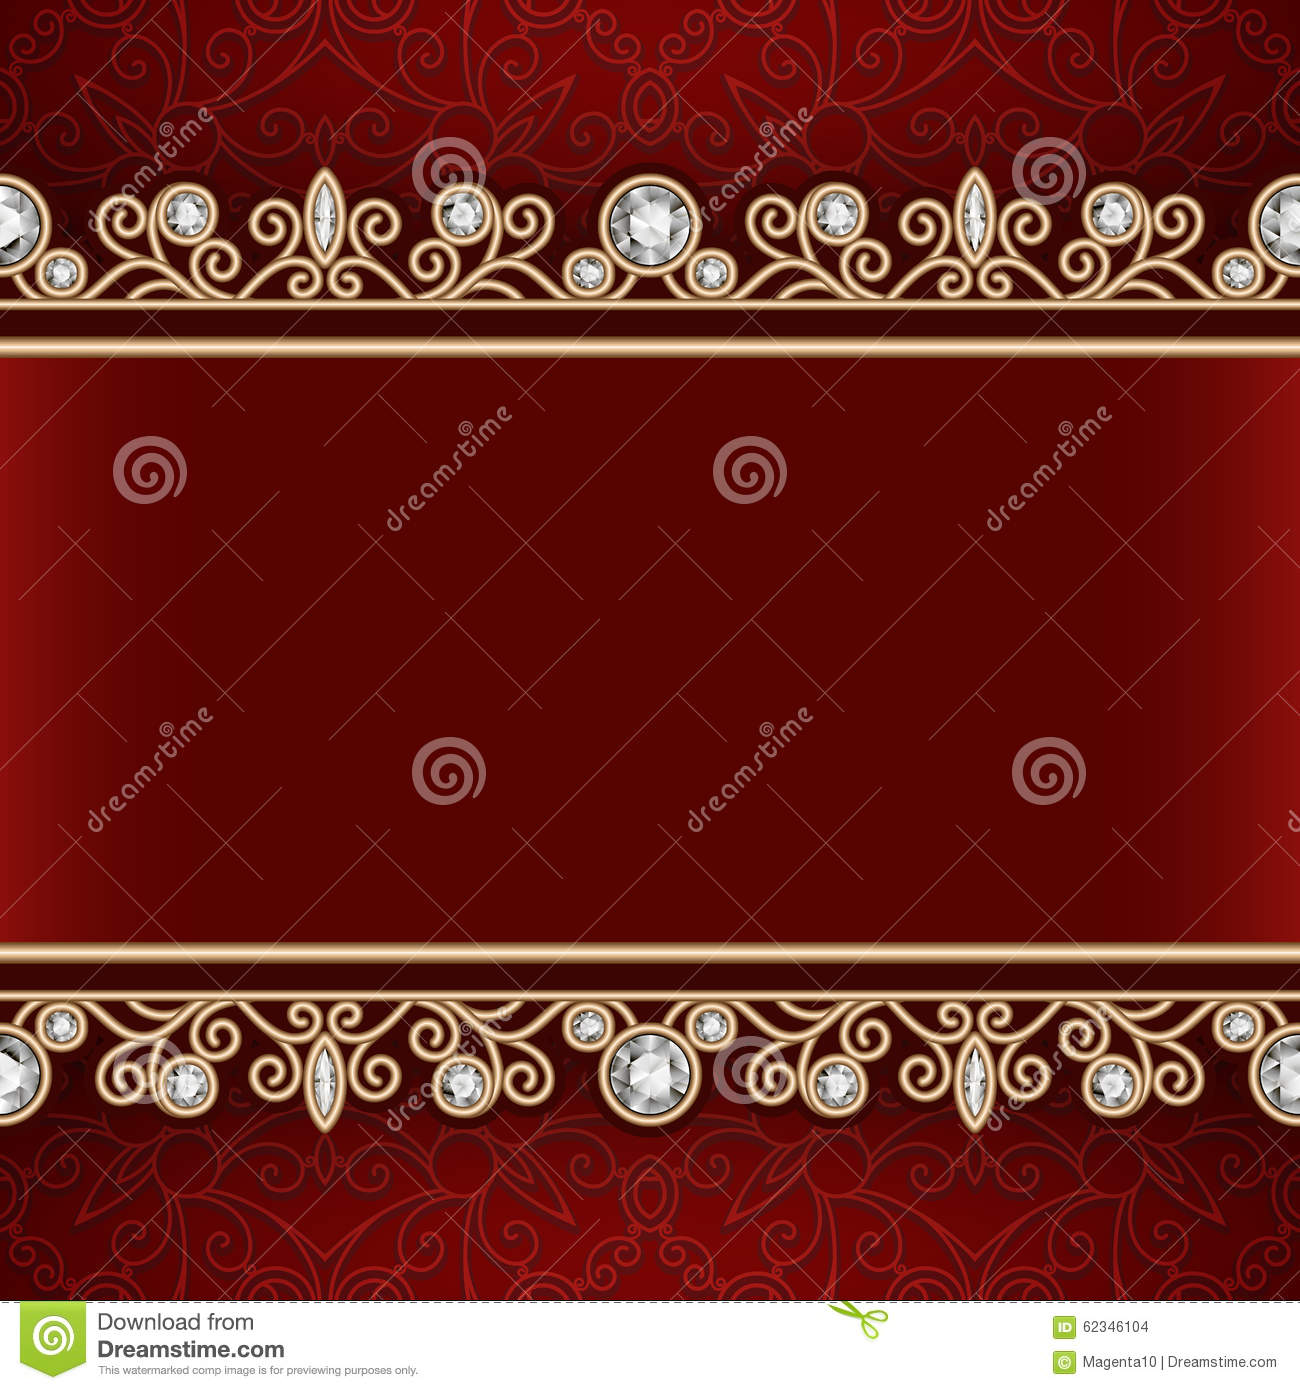 Gold Frame With Jewelry Borders On Red Background Stock ...